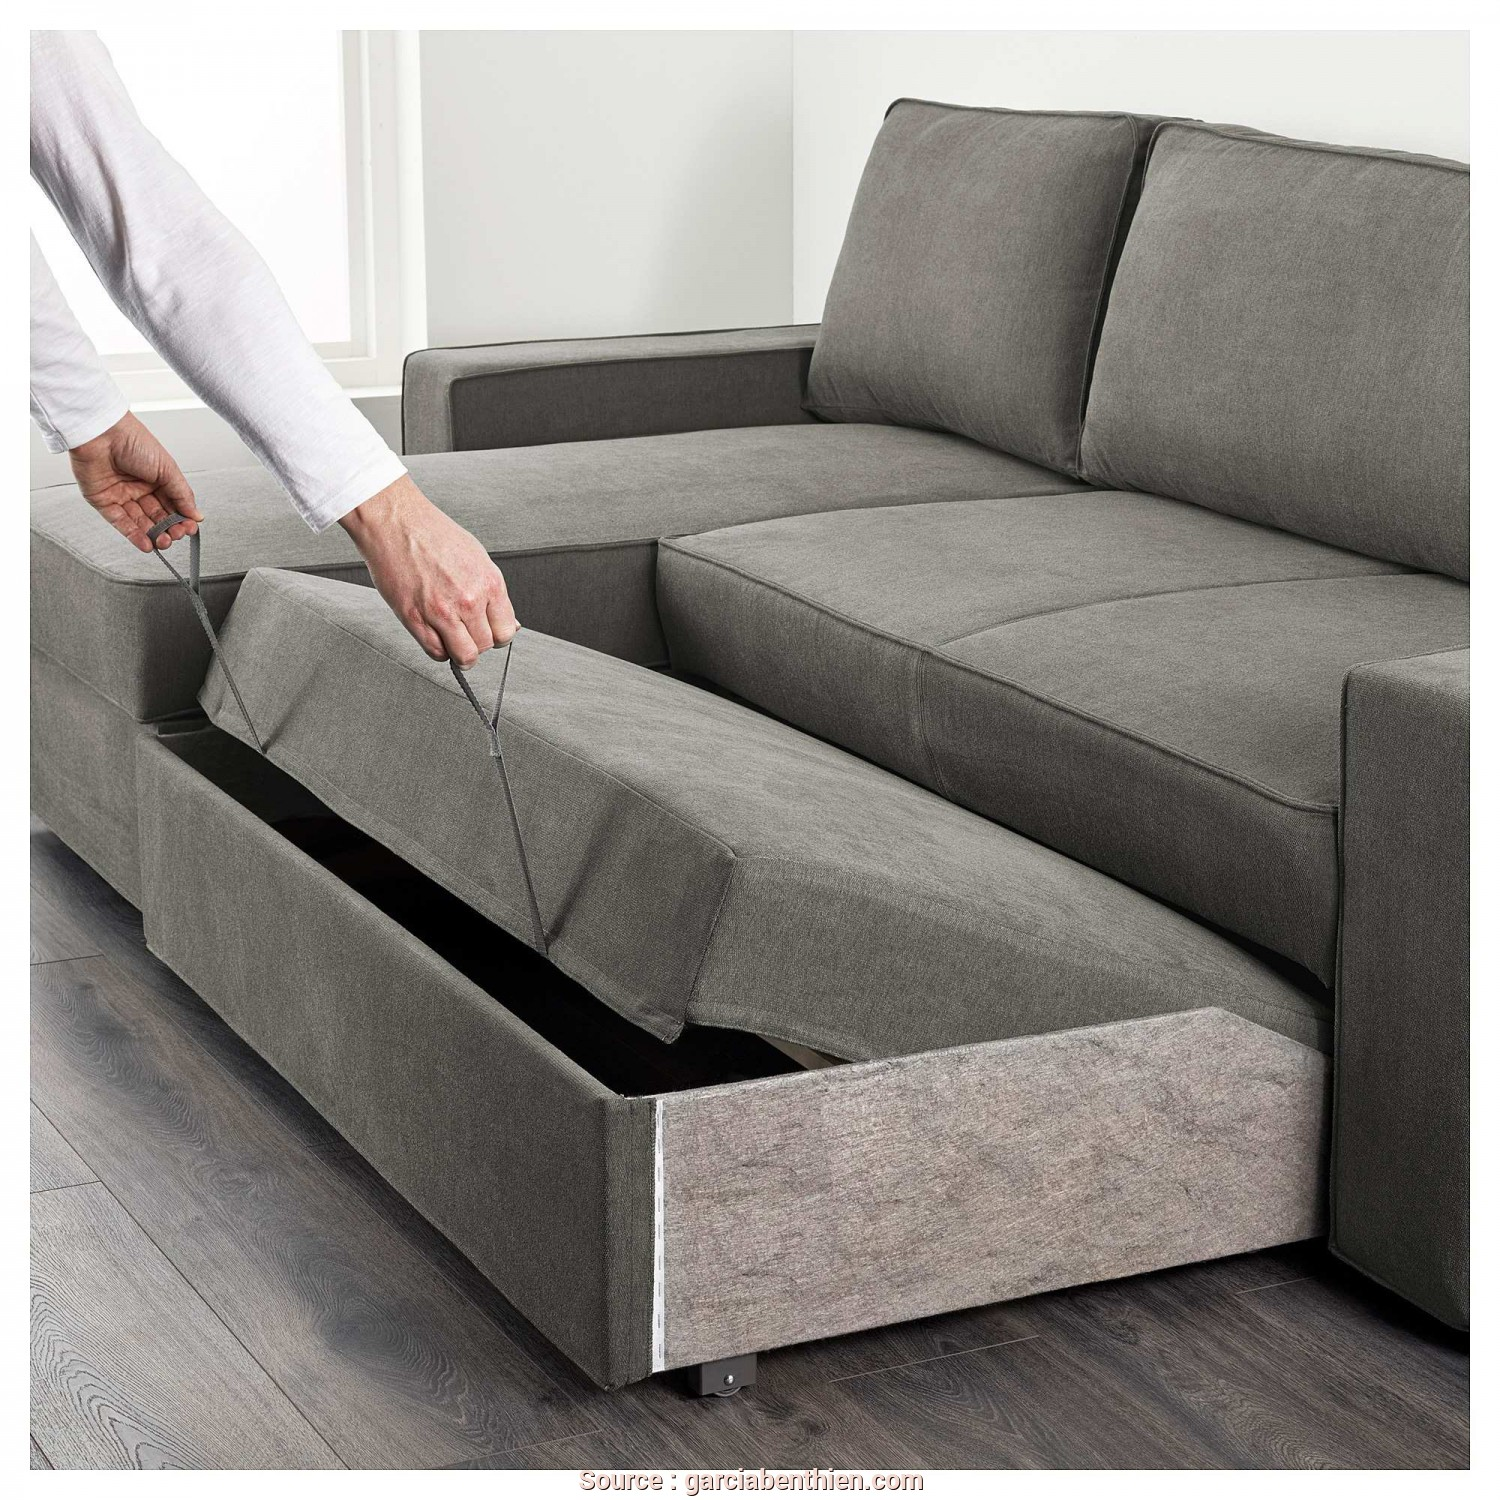 Vilasund Ikea Uk, Esclusivo Vilasund Sofa, With Chaise Longue Borred Grey Green Ikea Of Cool Ikea Futon Sofa Bed